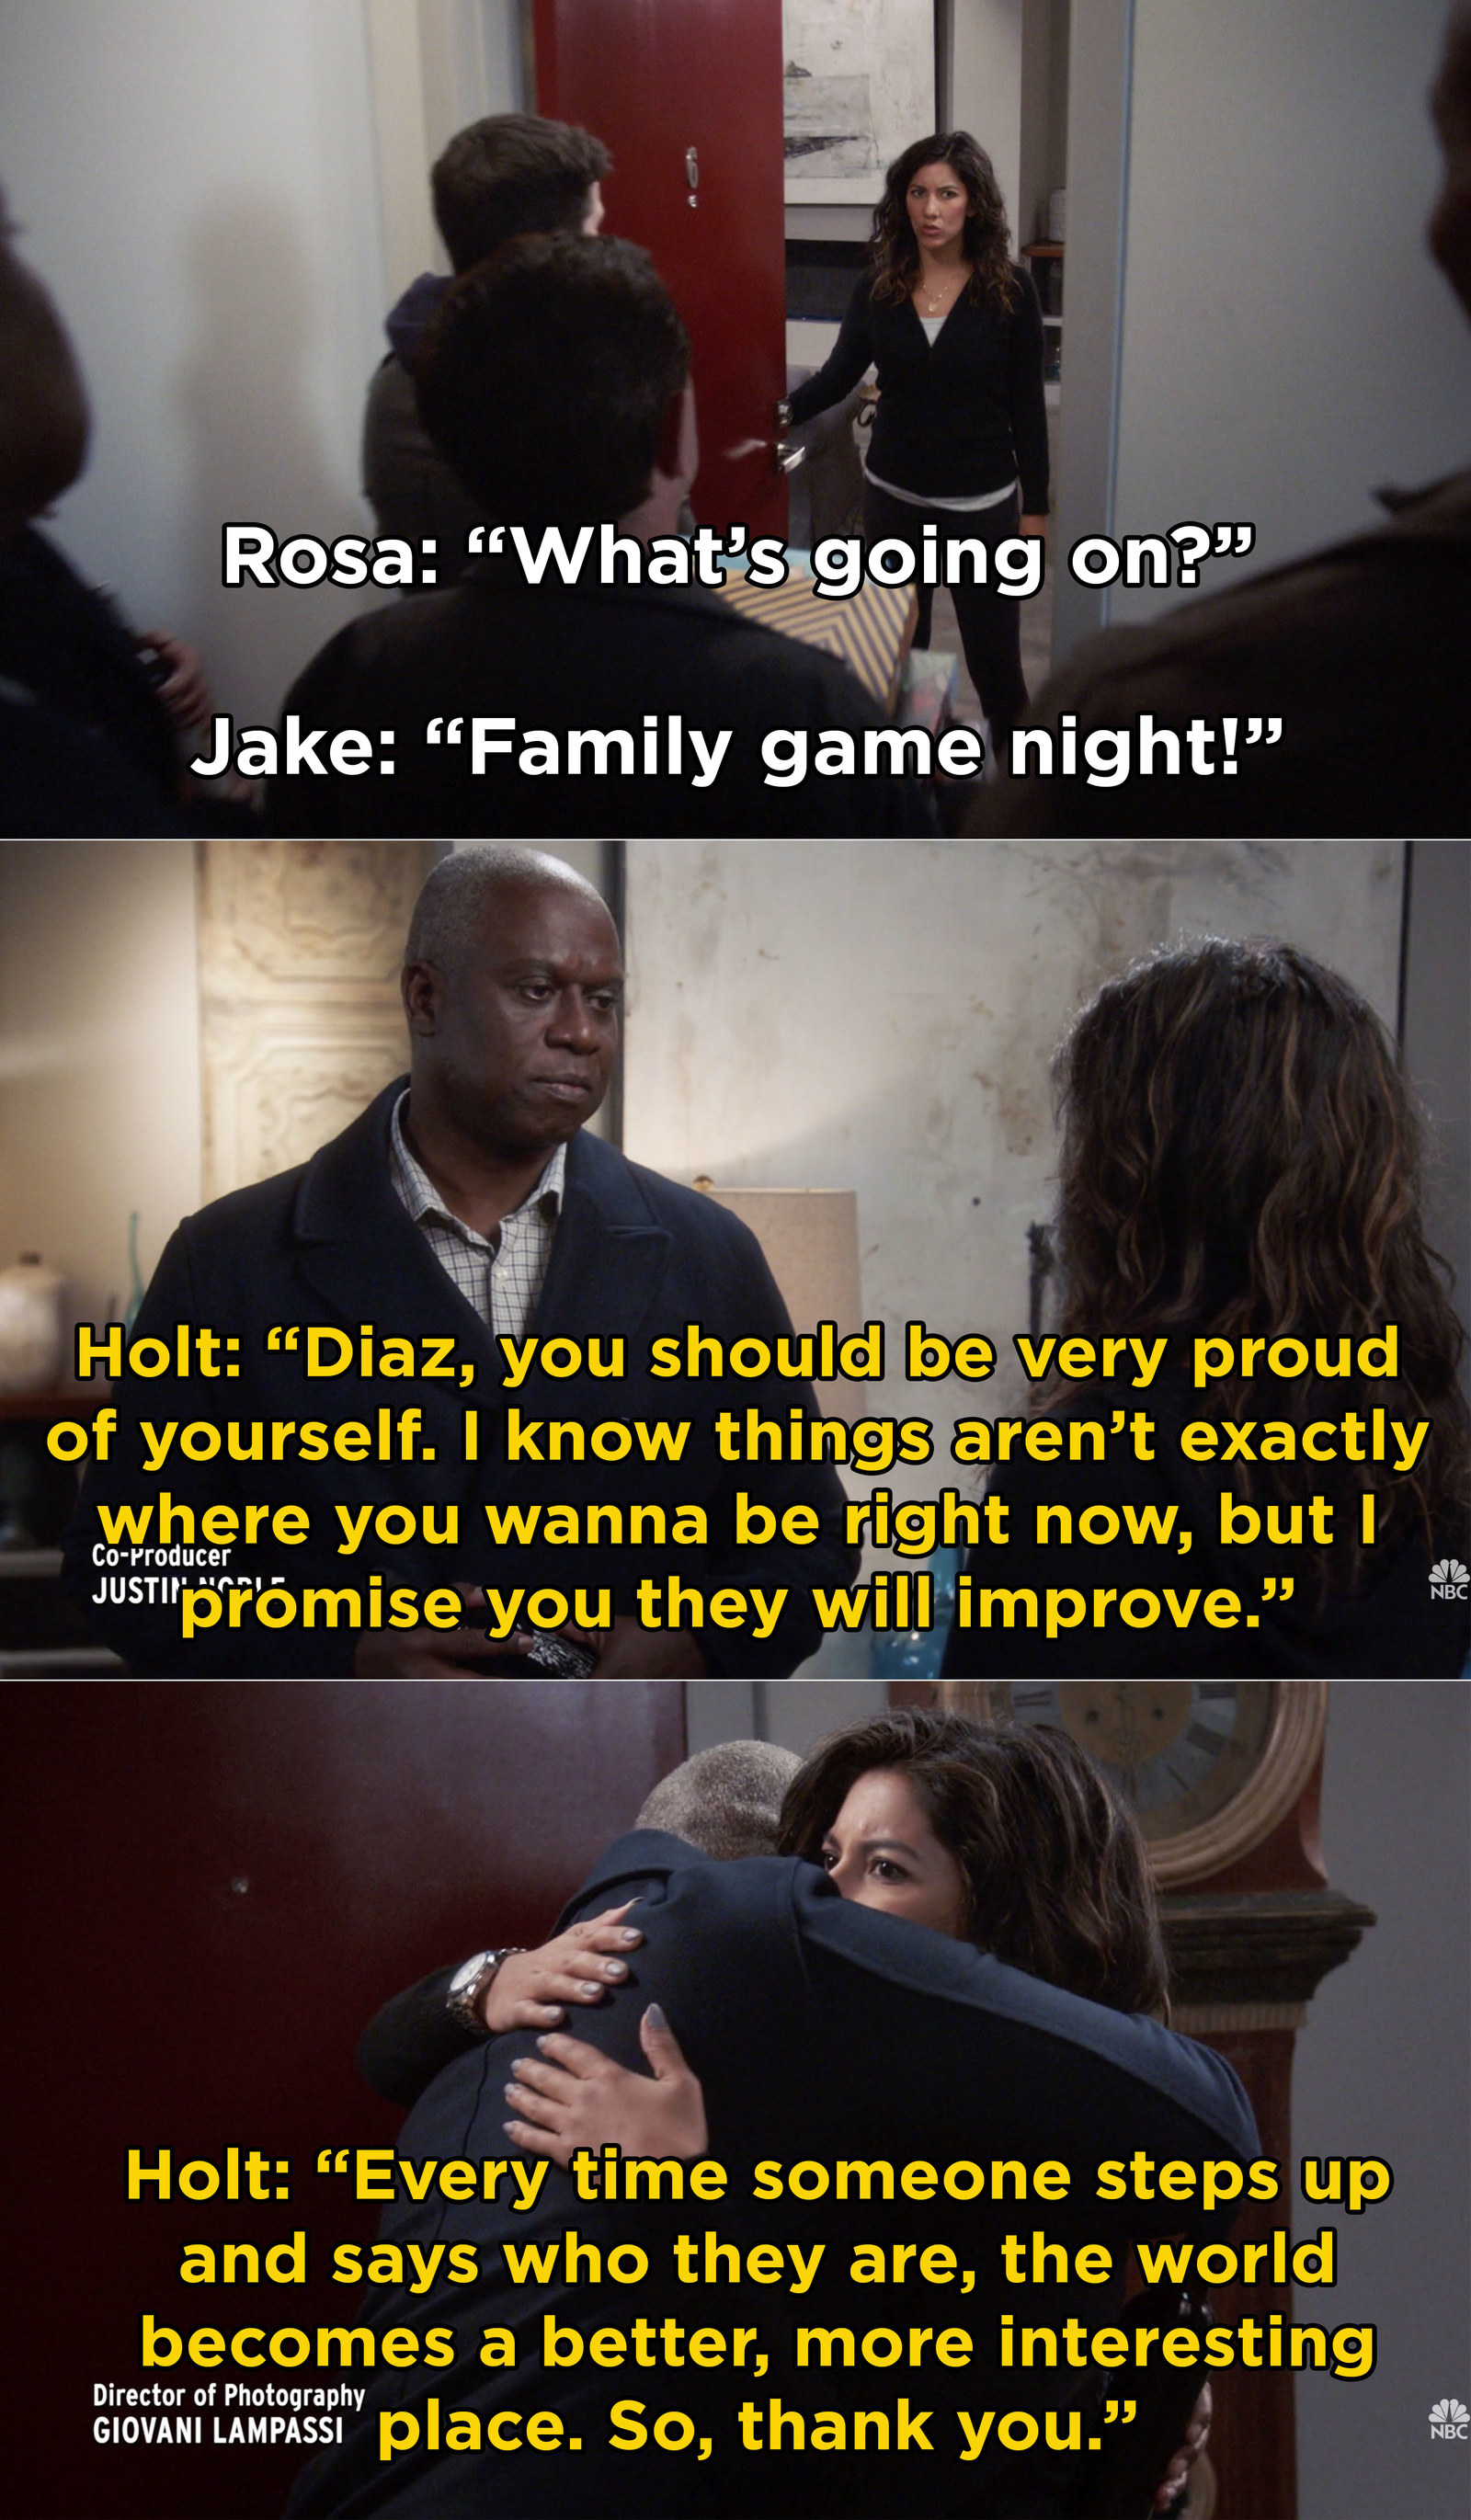 And then, when the squad threw Rosa a family game night to show their support